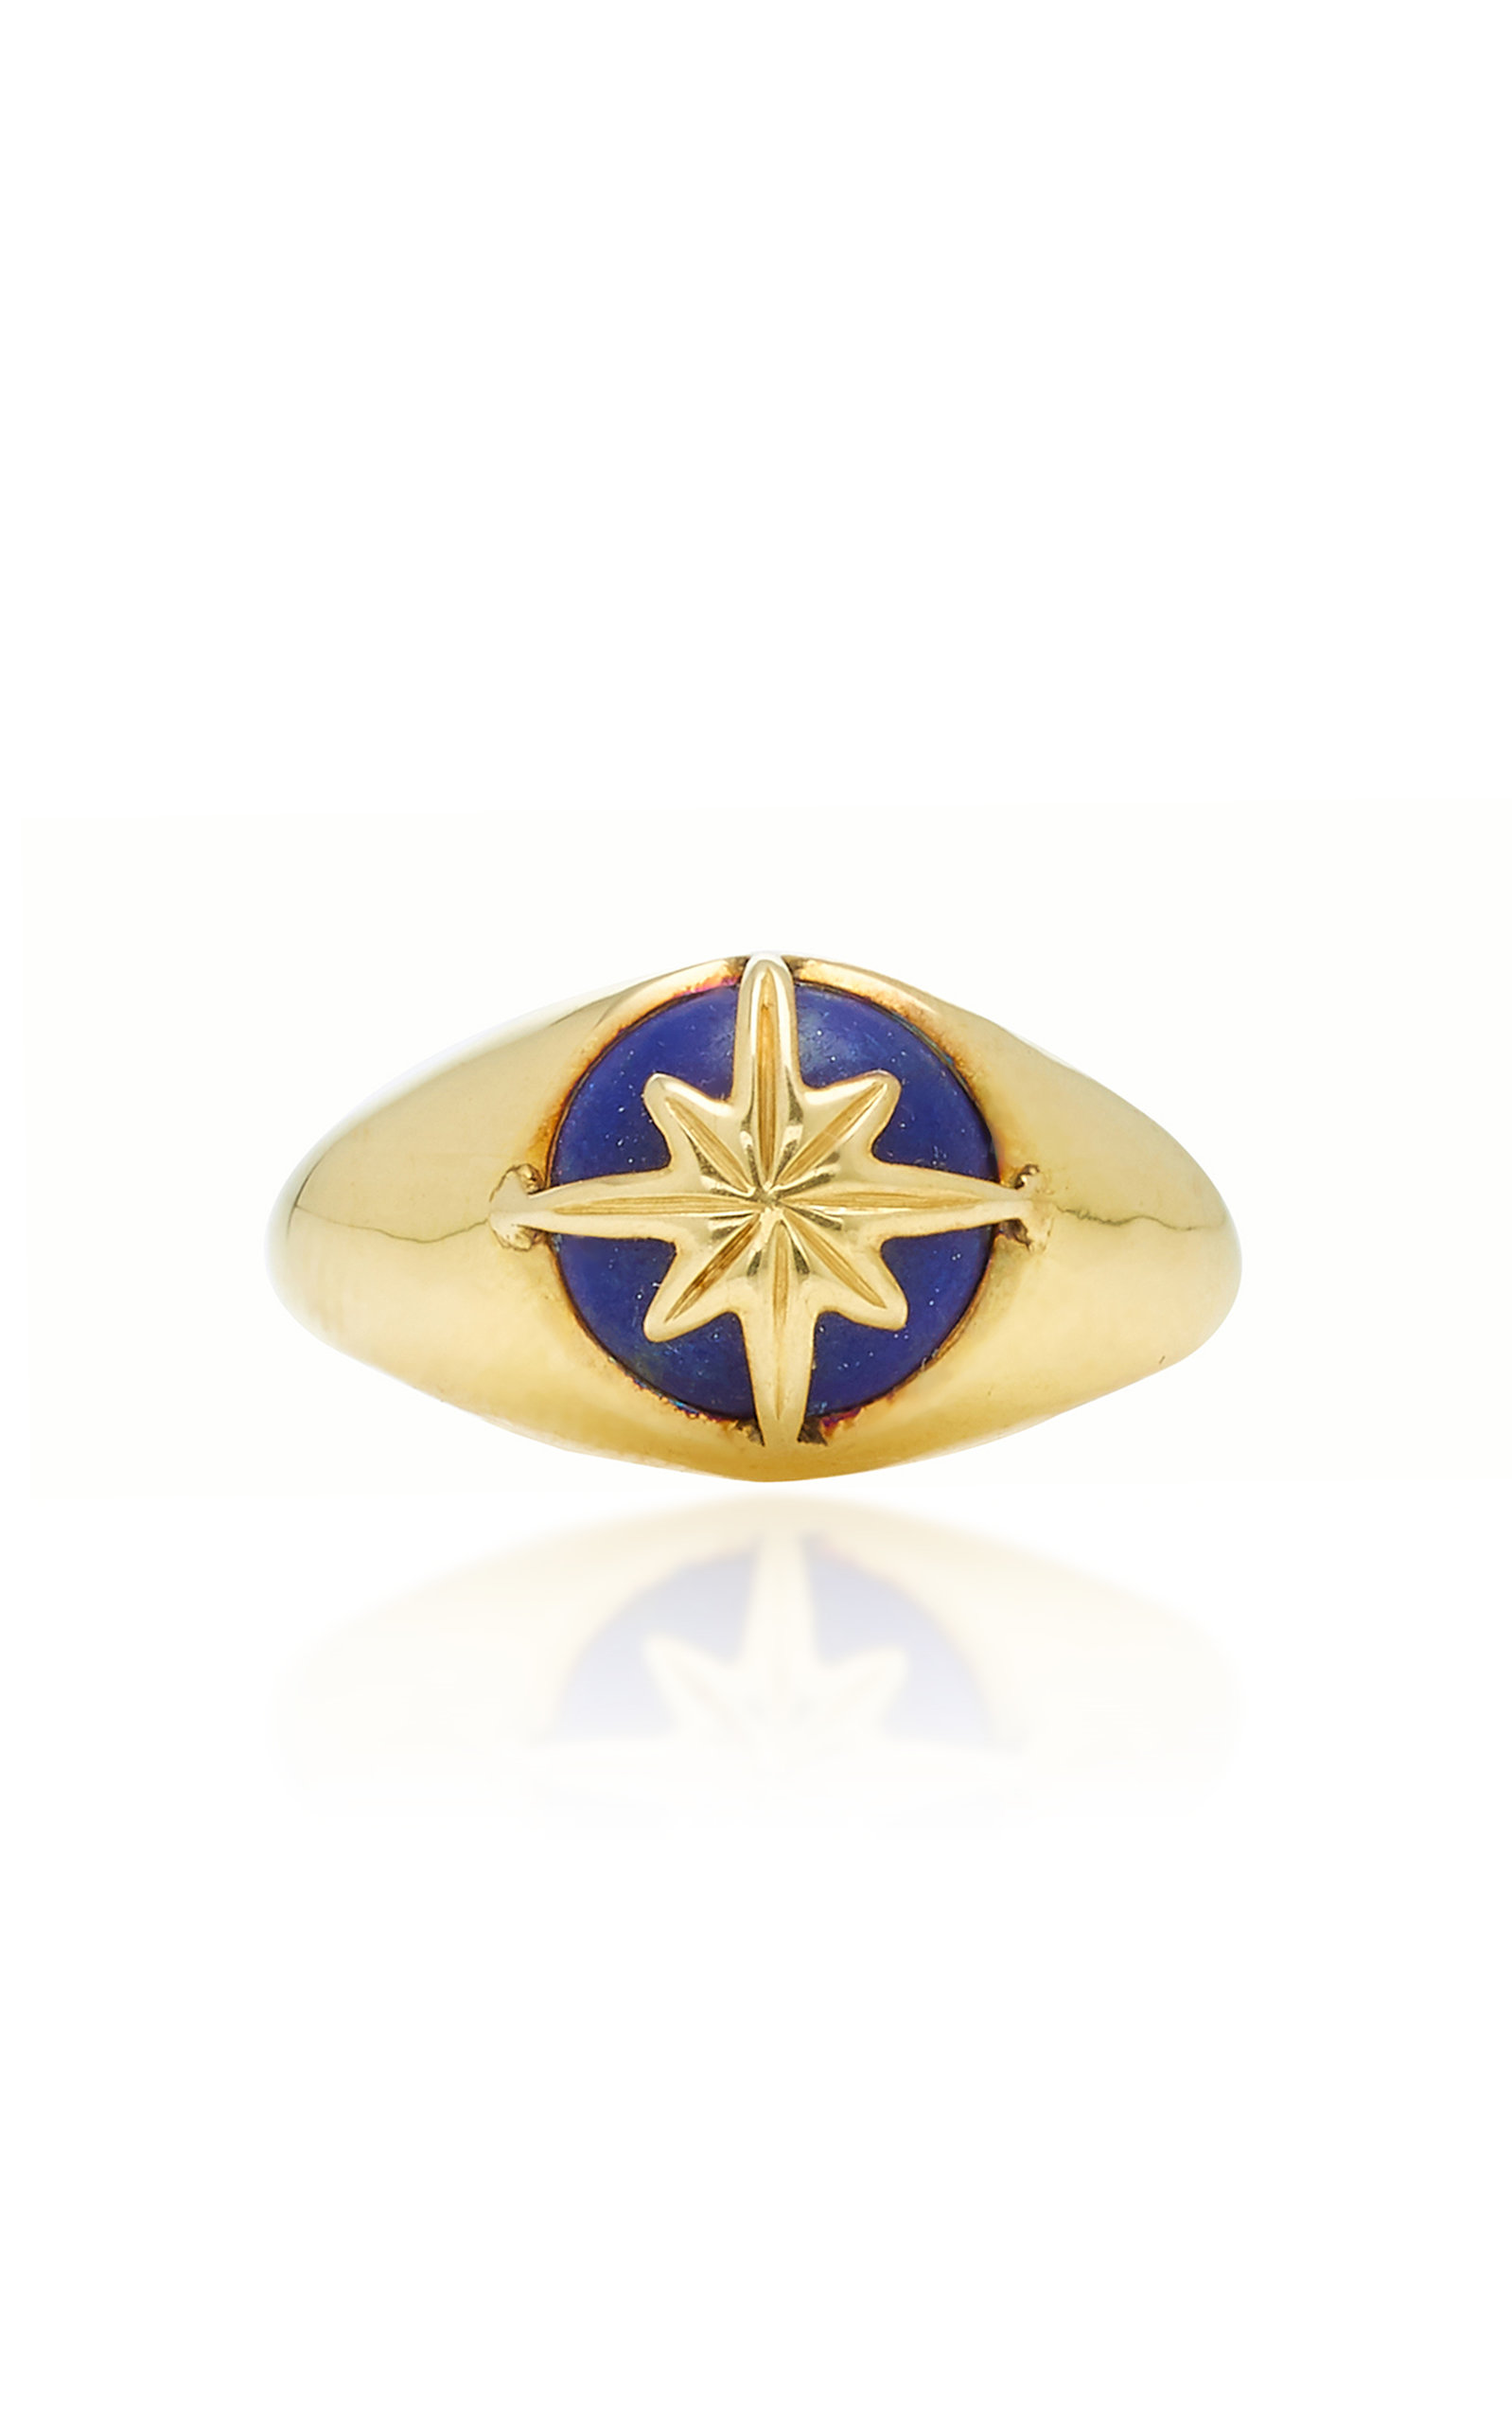 THEODORA WARRE STAR LAPIS GOLD-PLATED STERLING SILVER PINKY RING.